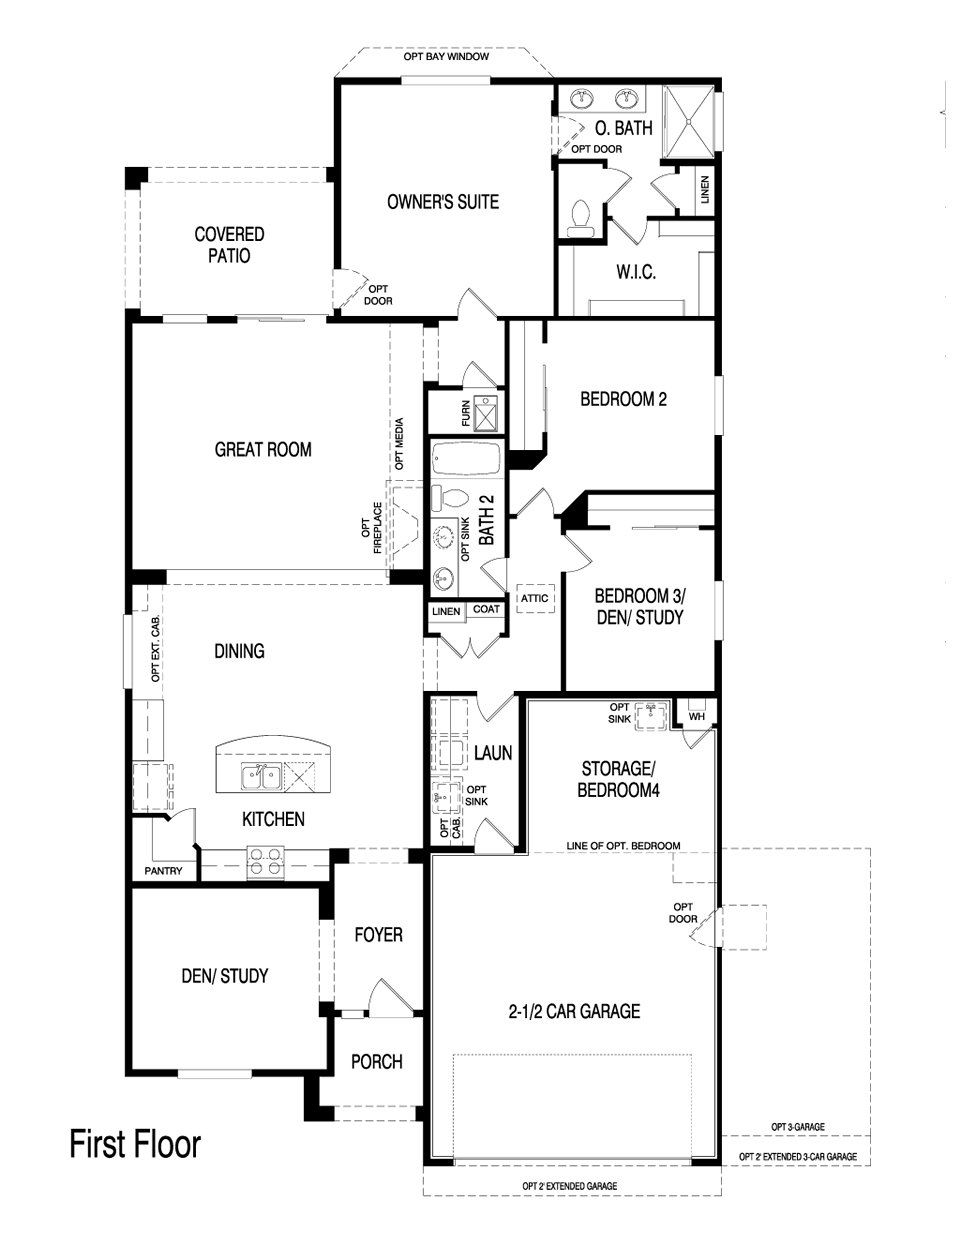 Pulte Homes Pulte Homes House Floor Plans Floor Plans